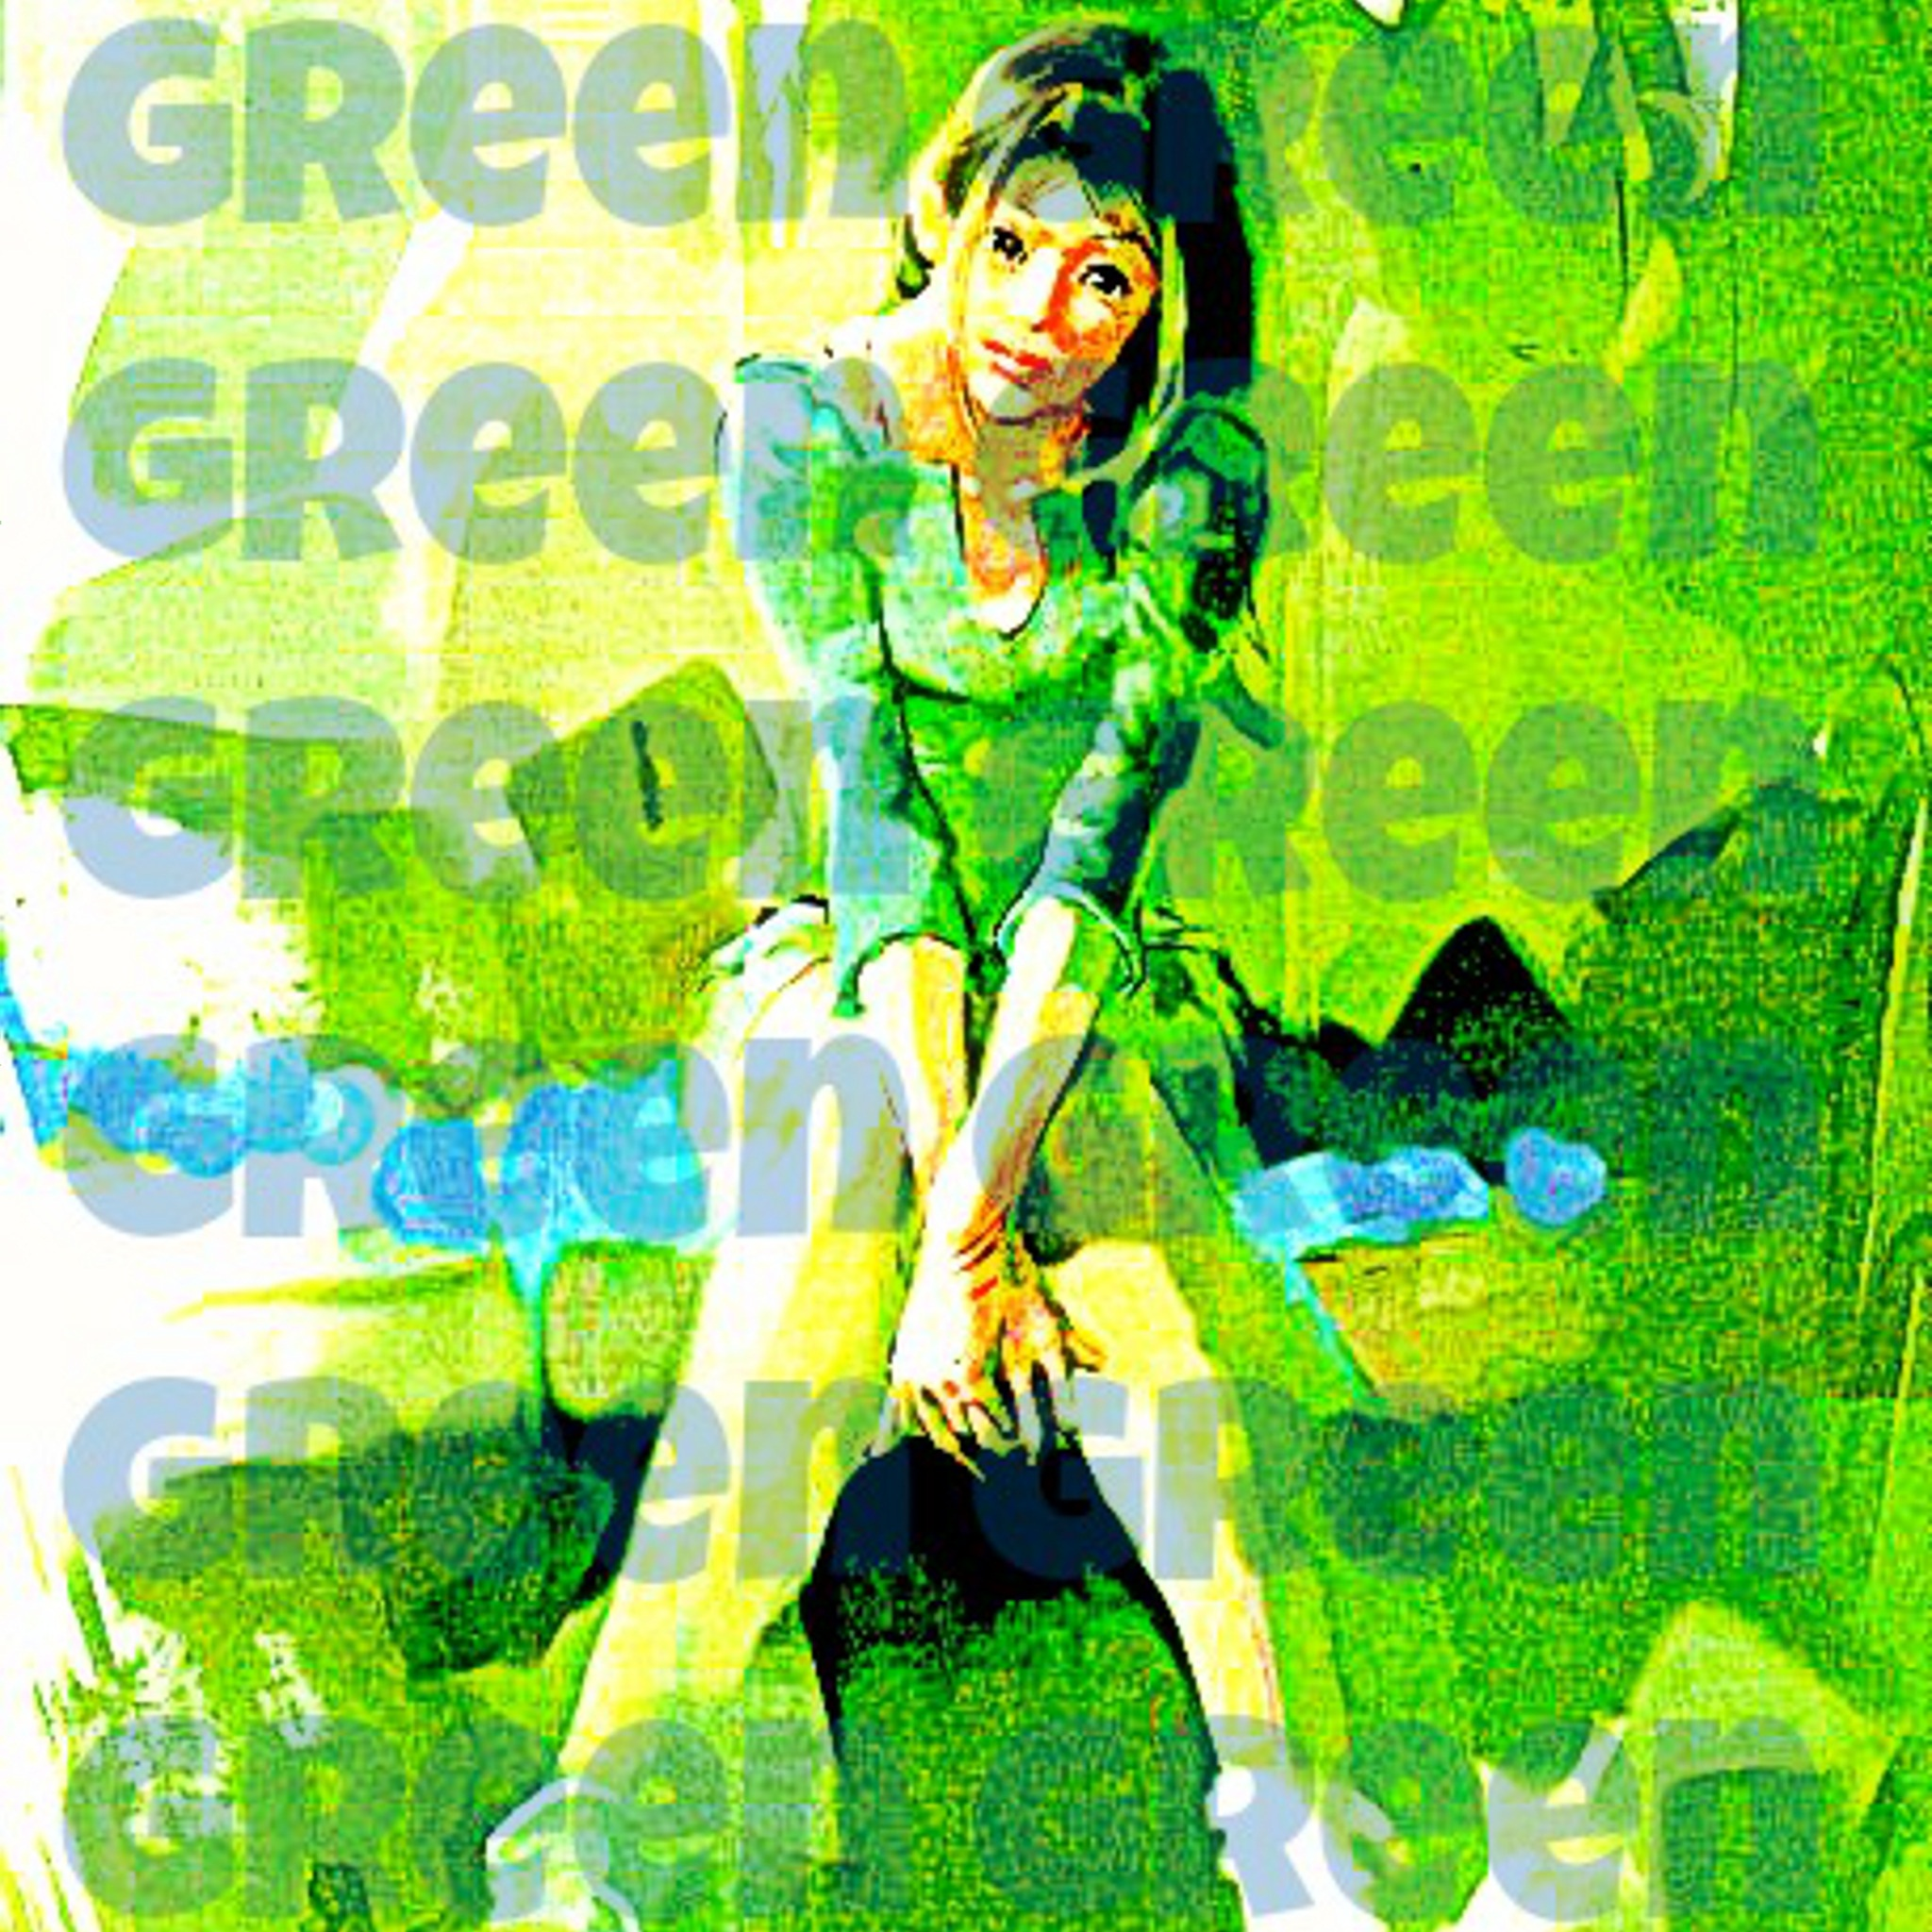 It's a GREEN world